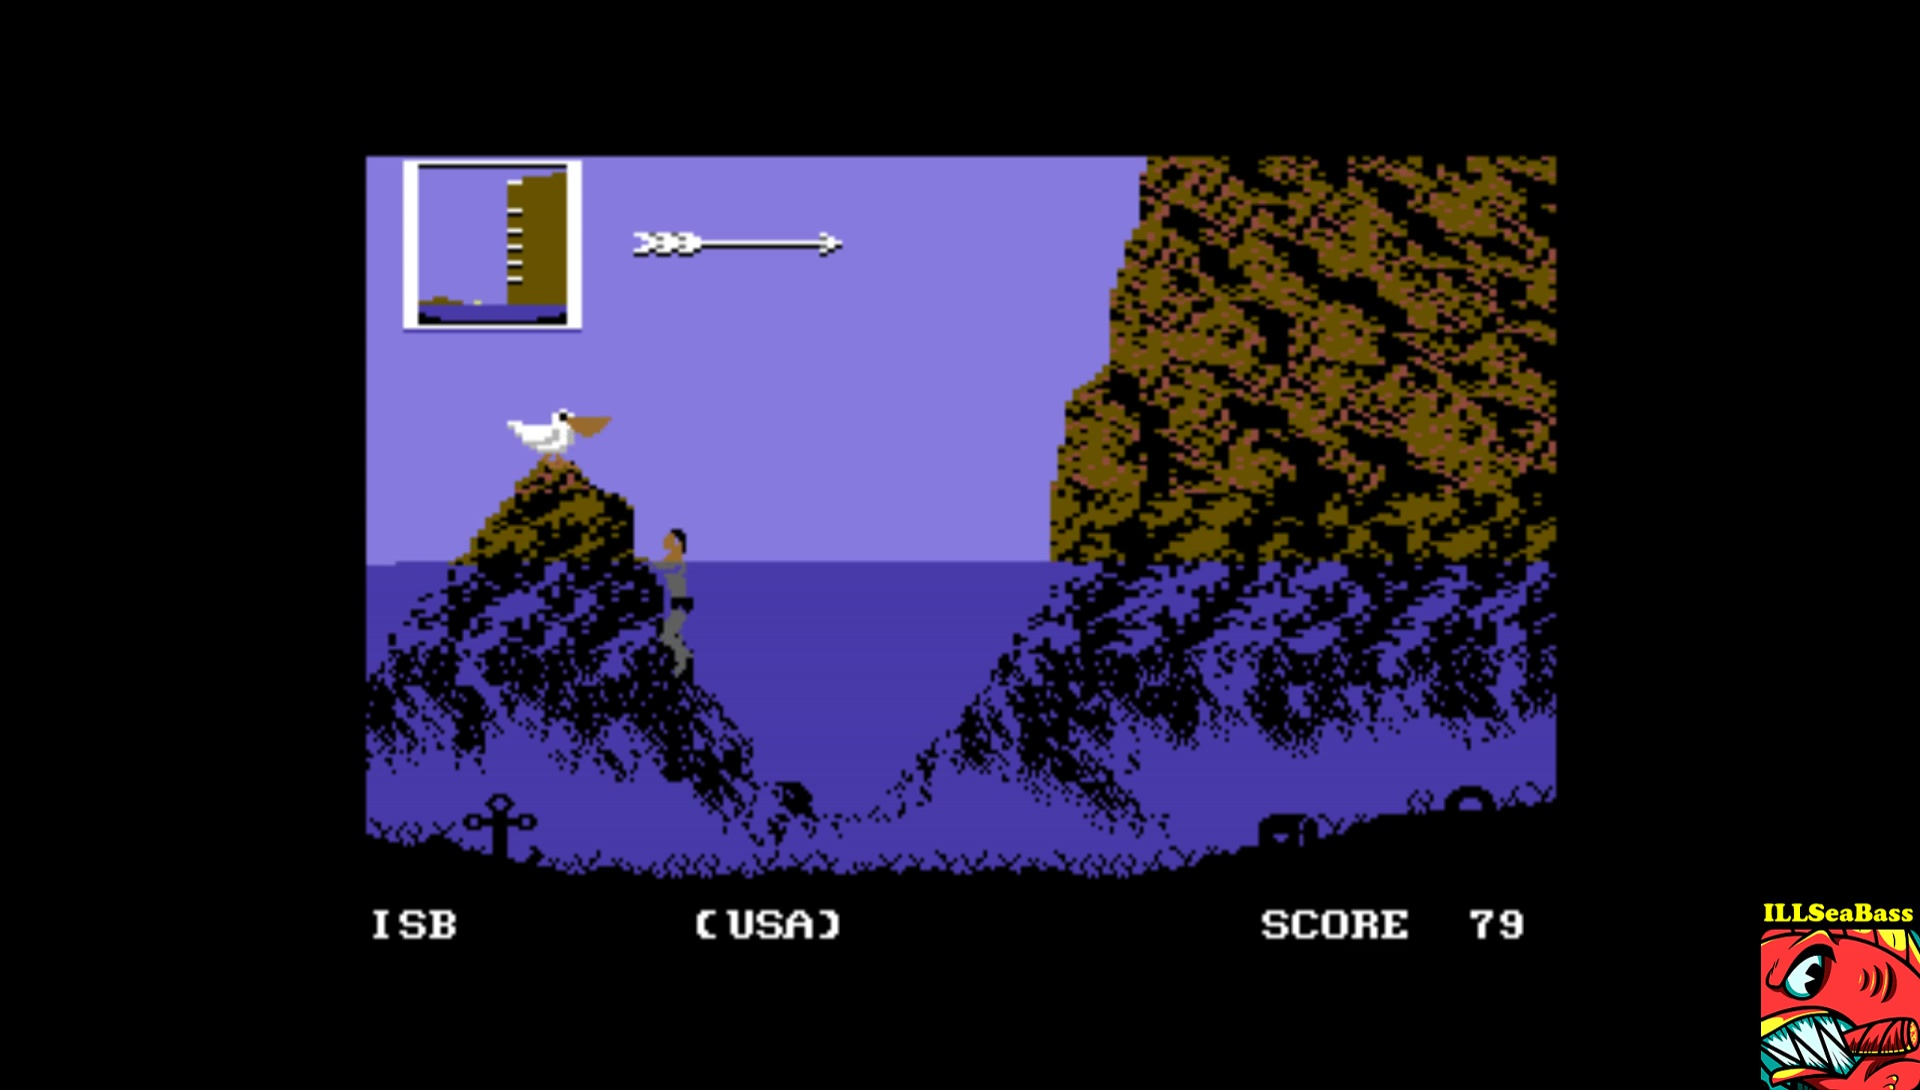 ILLSeaBass: World Games [Cliff Diving] (Commodore 64 Emulated) 79 points on 2017-02-16 21:54:33